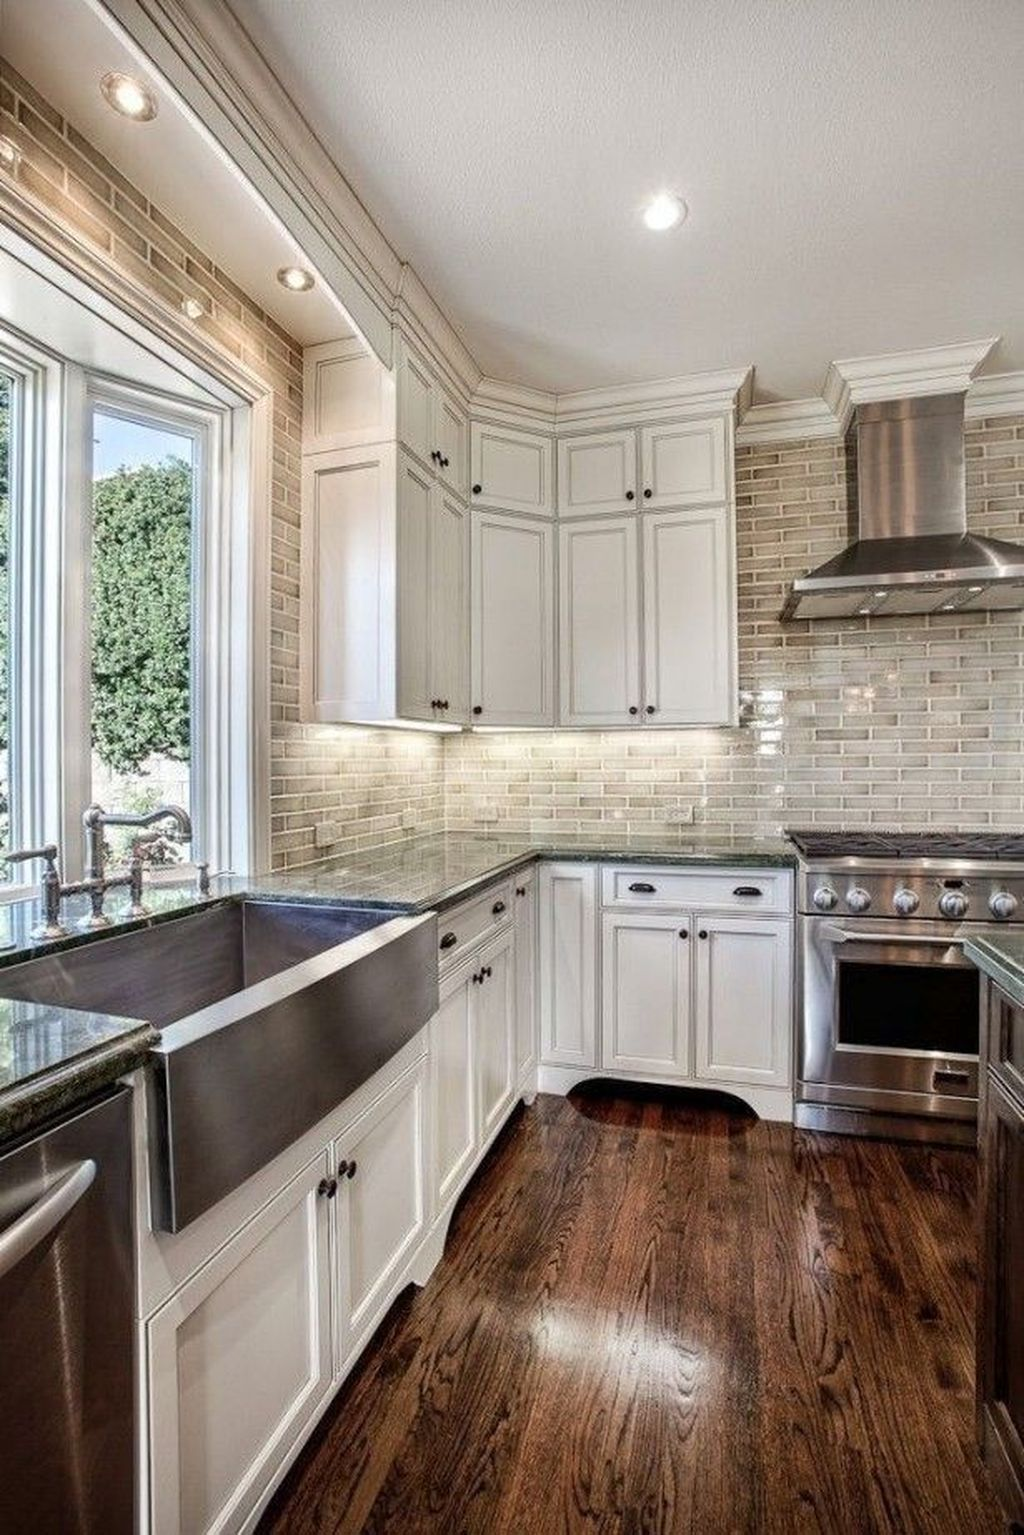 Cool 55 Incredible Kitchen Backsplash with White Cabinet Ideas     Cool 55 Incredible Kitchen Backsplash with White Cabinet Ideas  Backsplash   cabinet  ideas